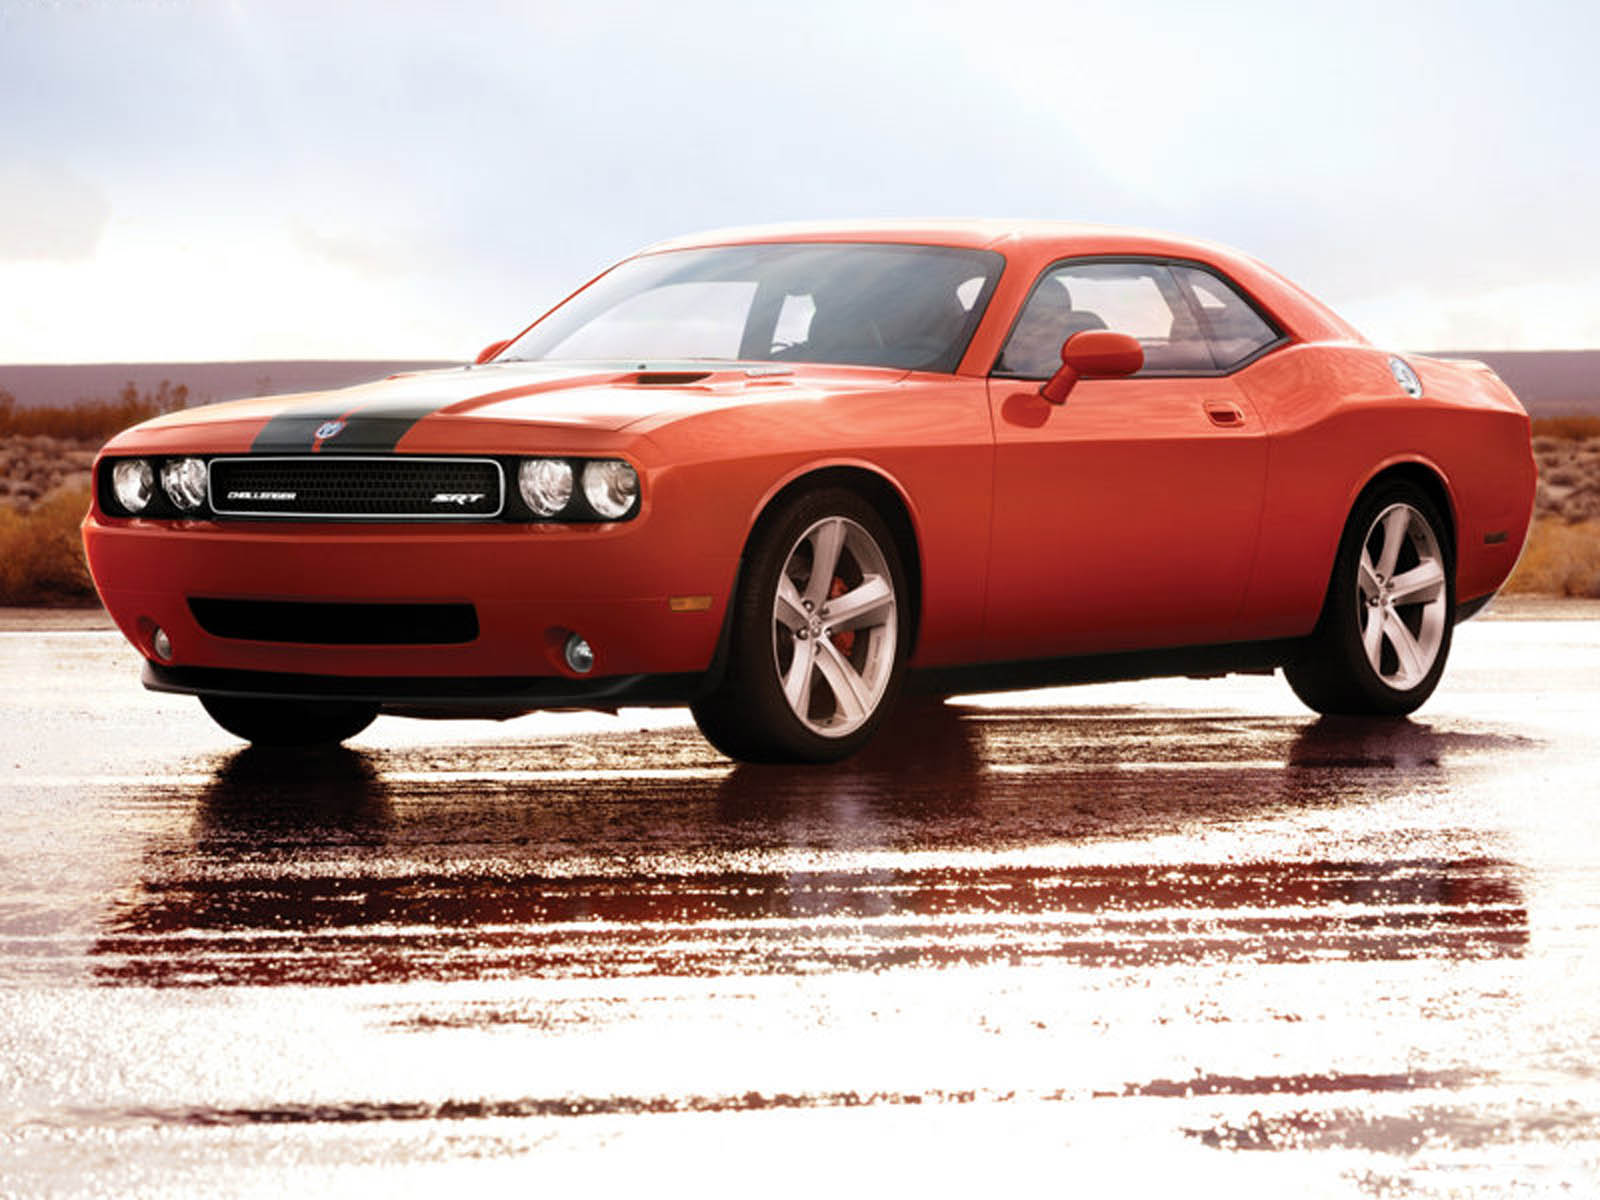 Tag Dodge Challenger SRT8 Car Wallpapers Images Photos Pictures 1600x1200